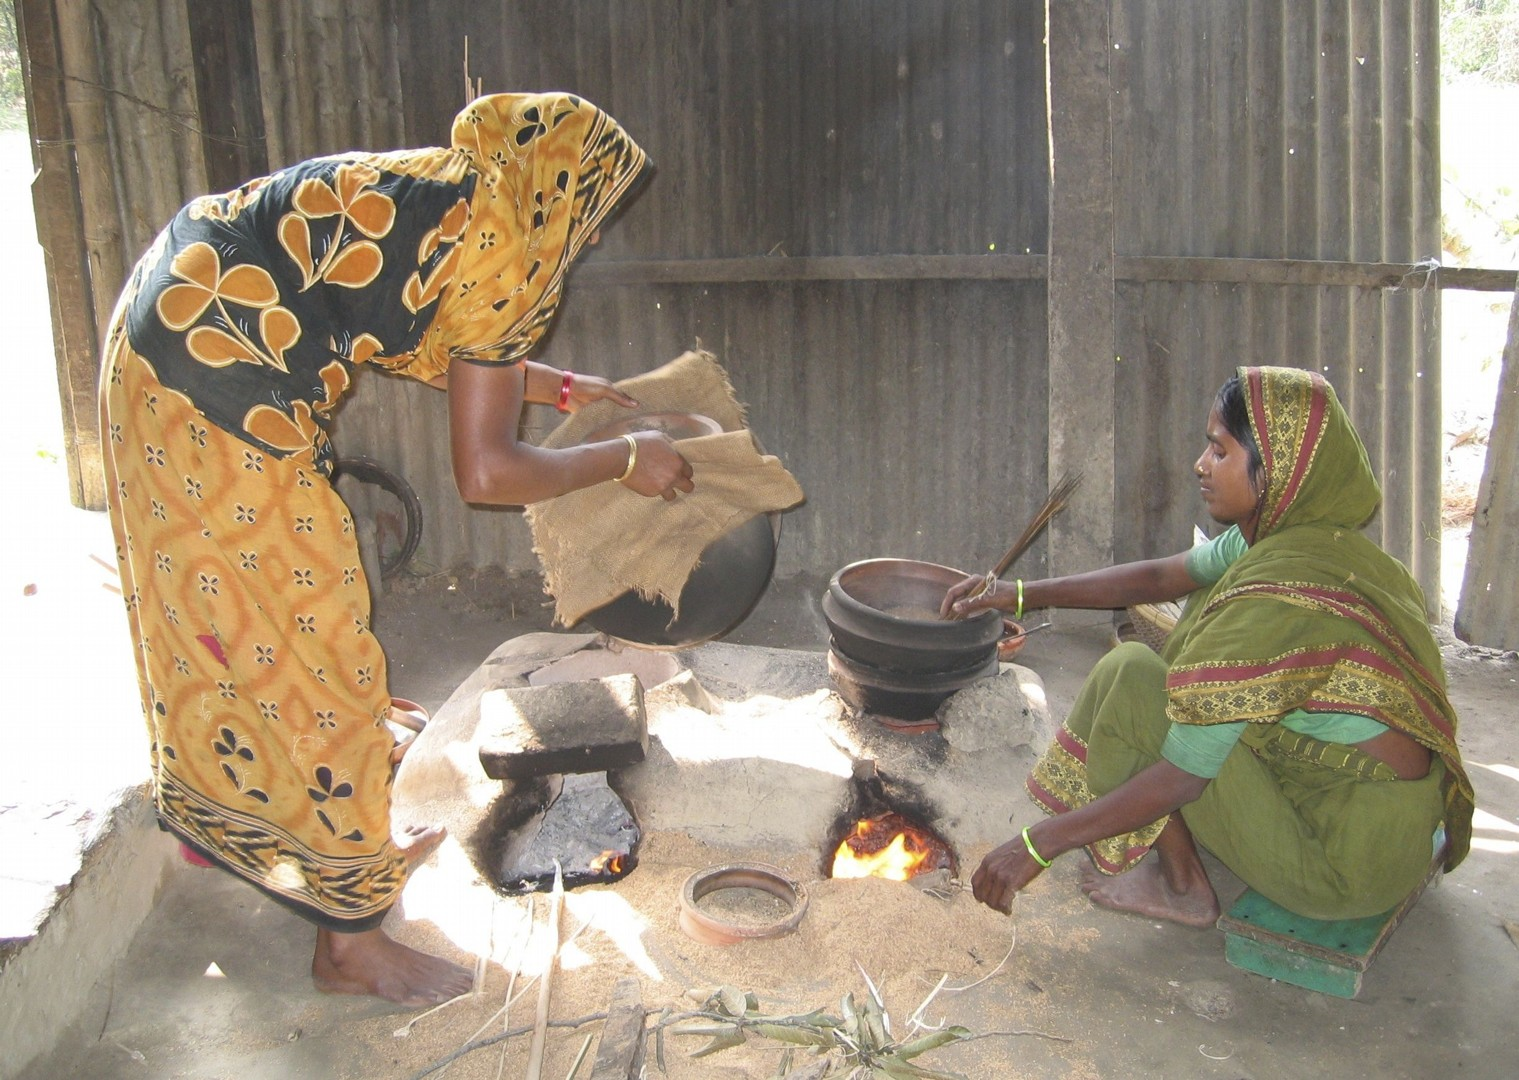 Cooking.jpg - Bangladesh - Meet the People Tours